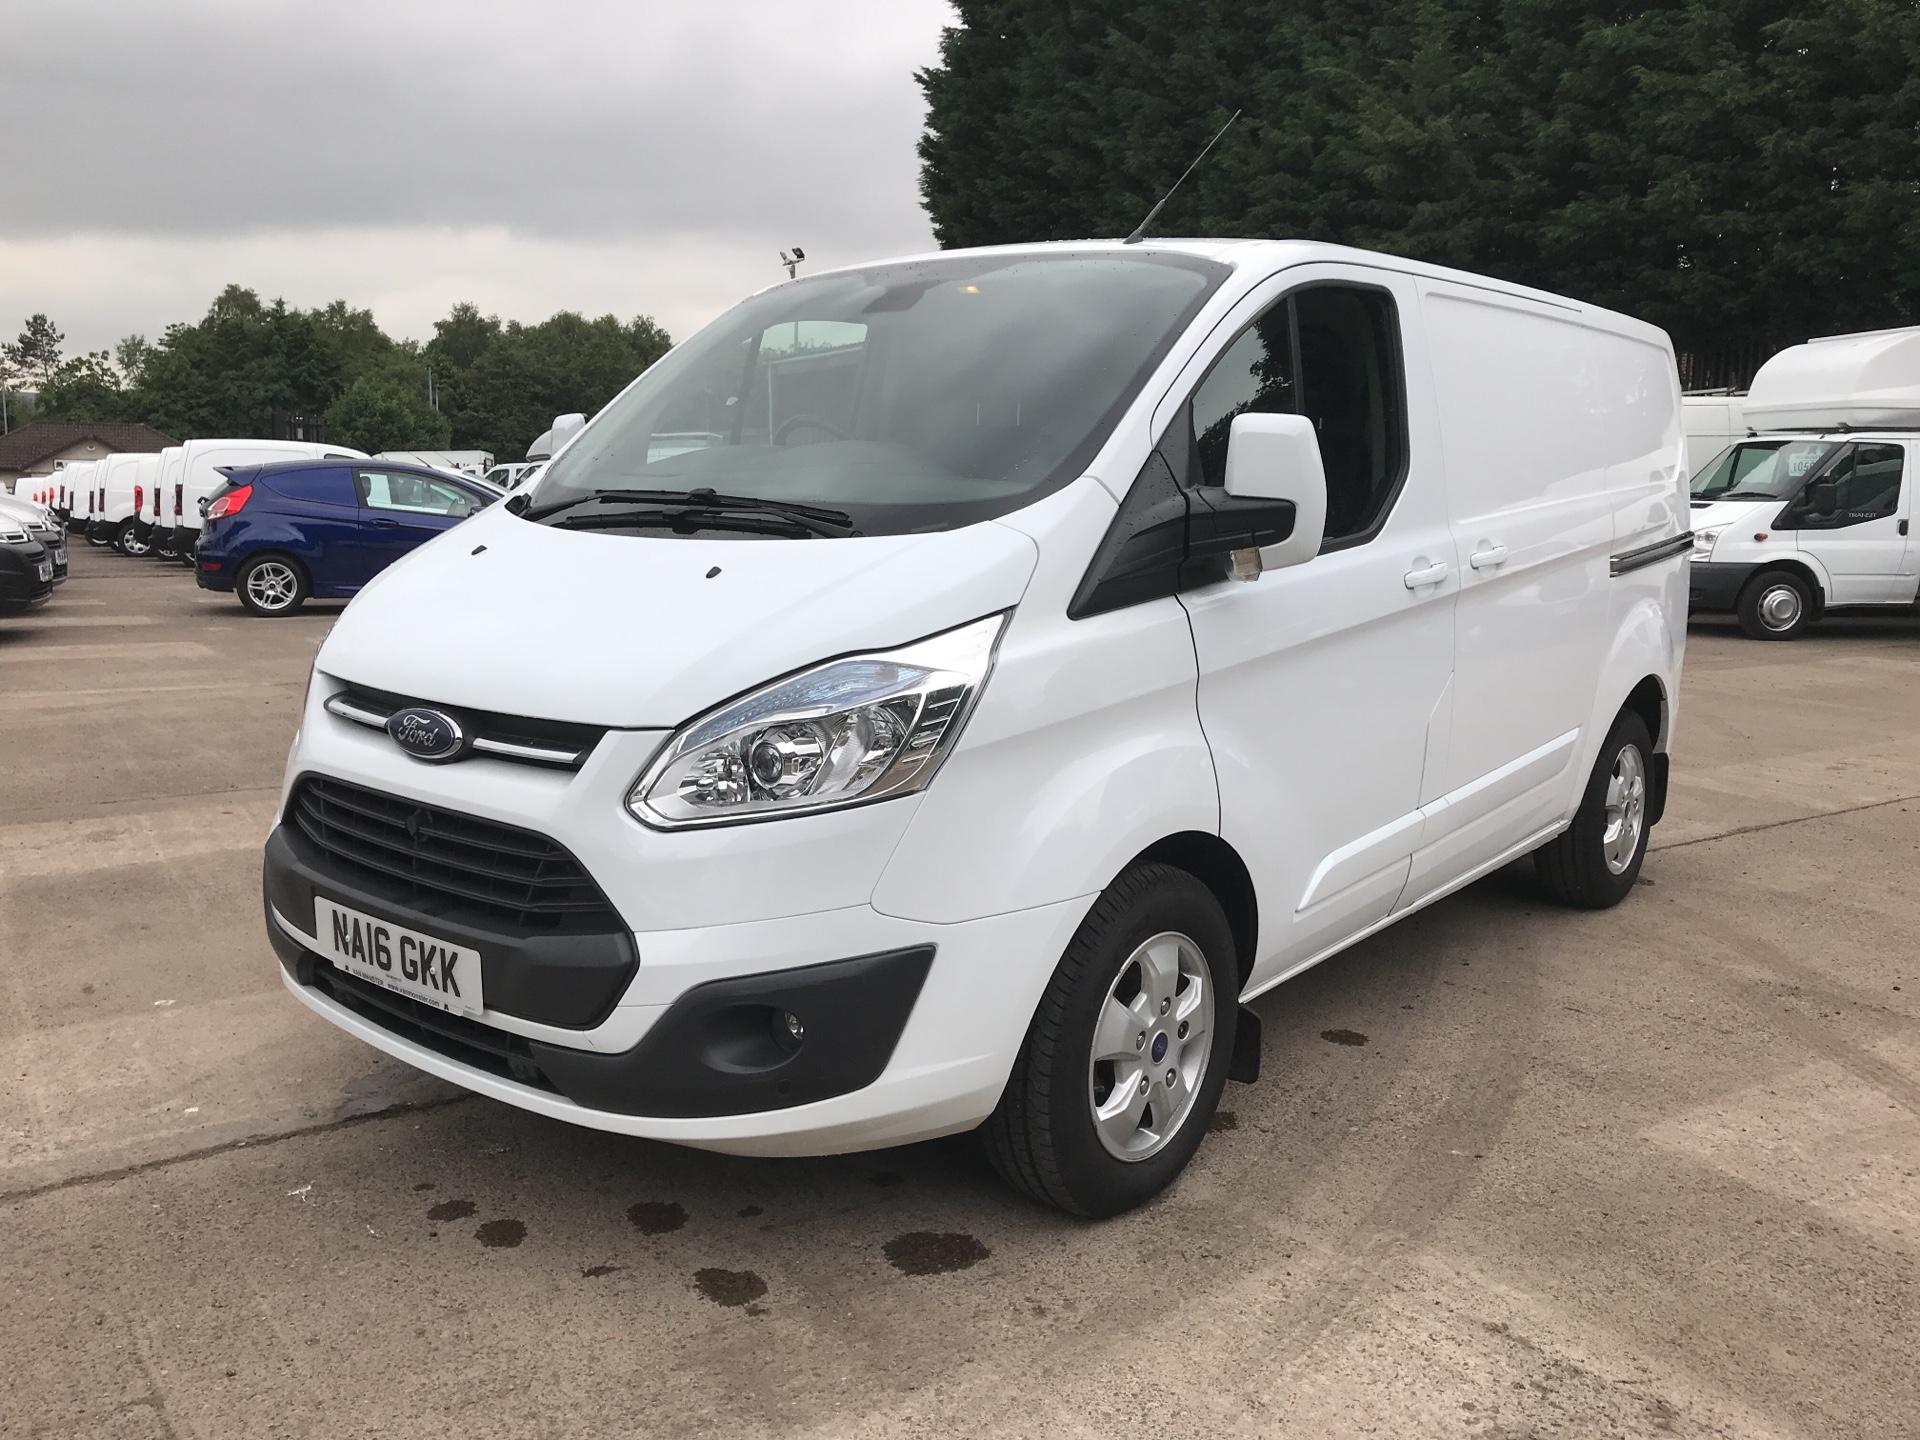 2016 Ford Transit Custom 270 L1 DIESEL FWD 2.2  TDCI 125PS LOW ROOF LIMITED VAN EURO 5 (NA16GKK) Image 7